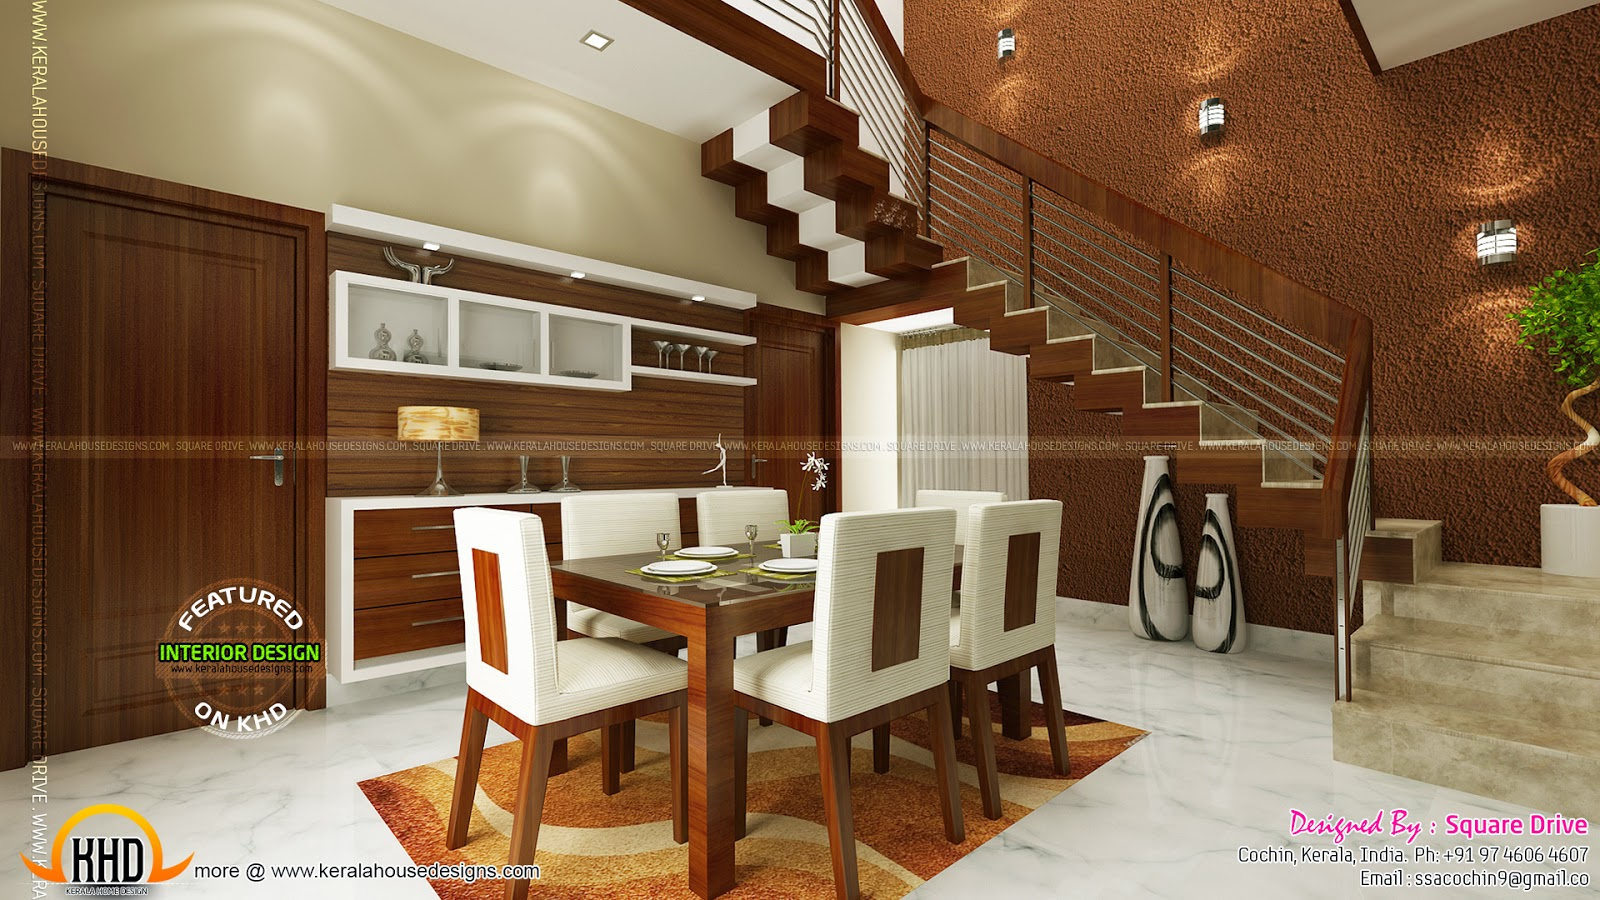 Cochin interior design kerala home design and floor plans for Kerala home interior